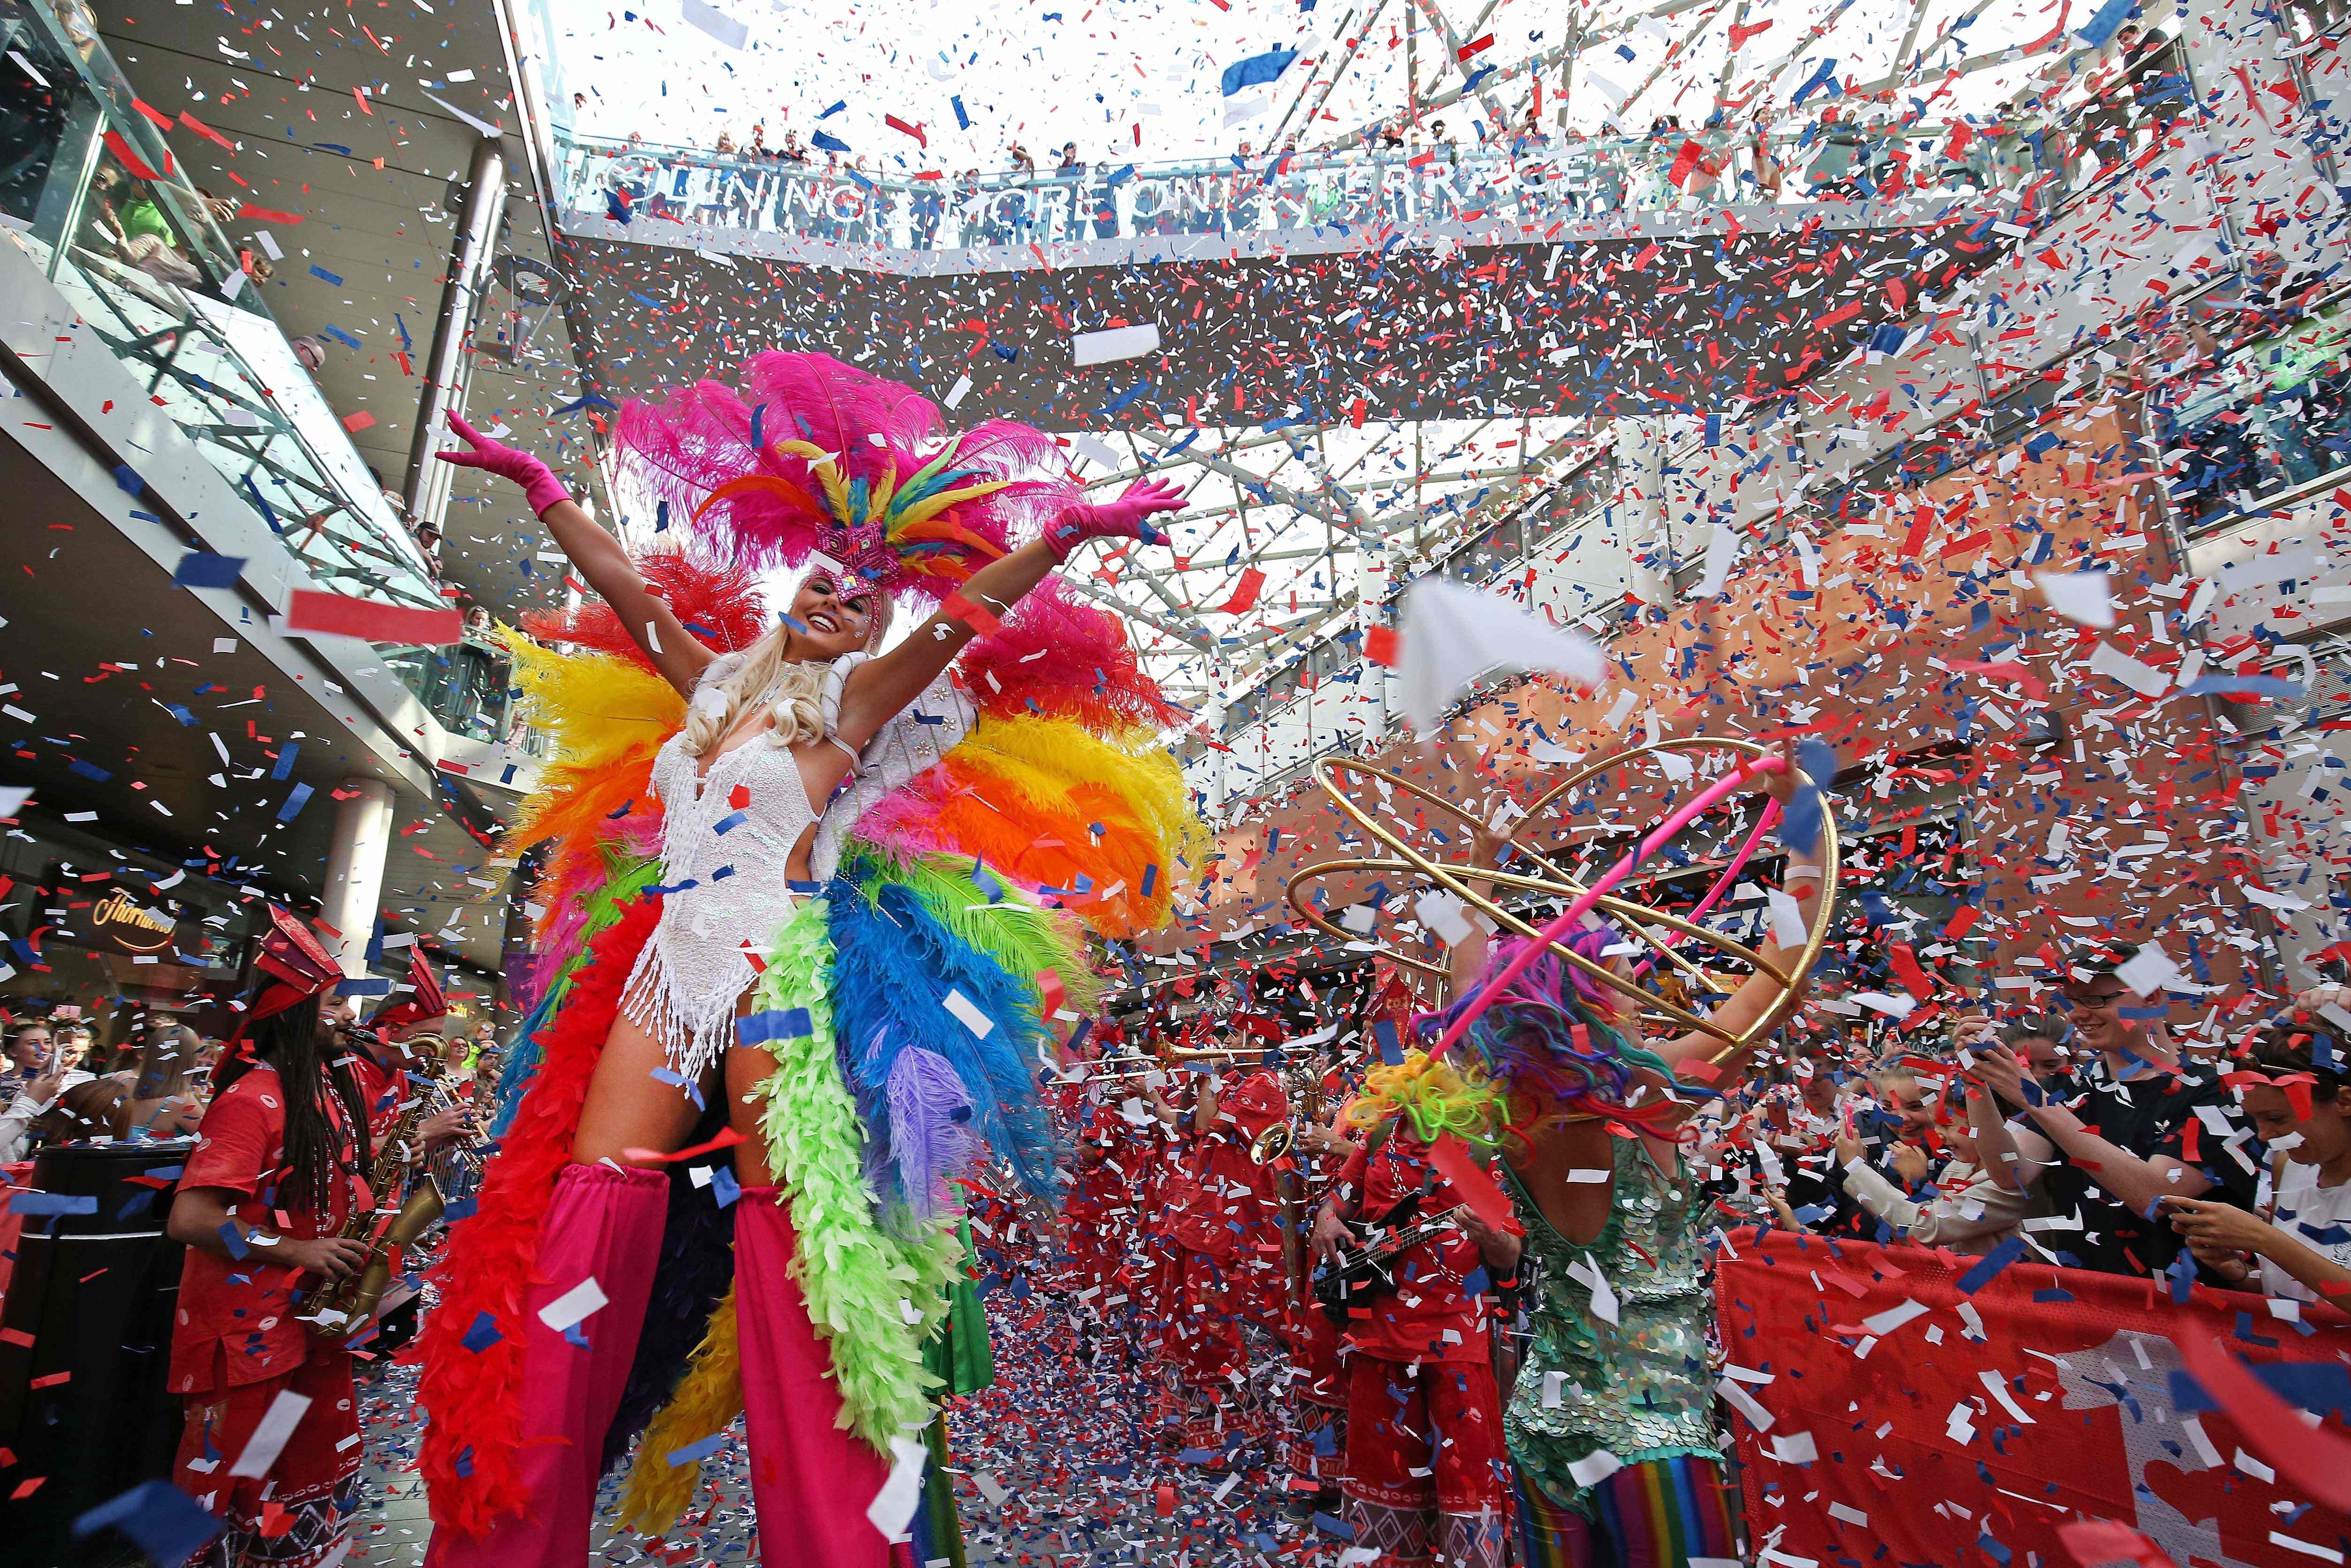 Liverpool One Samba parade performances and shoppers.. Images by Gareth Jones